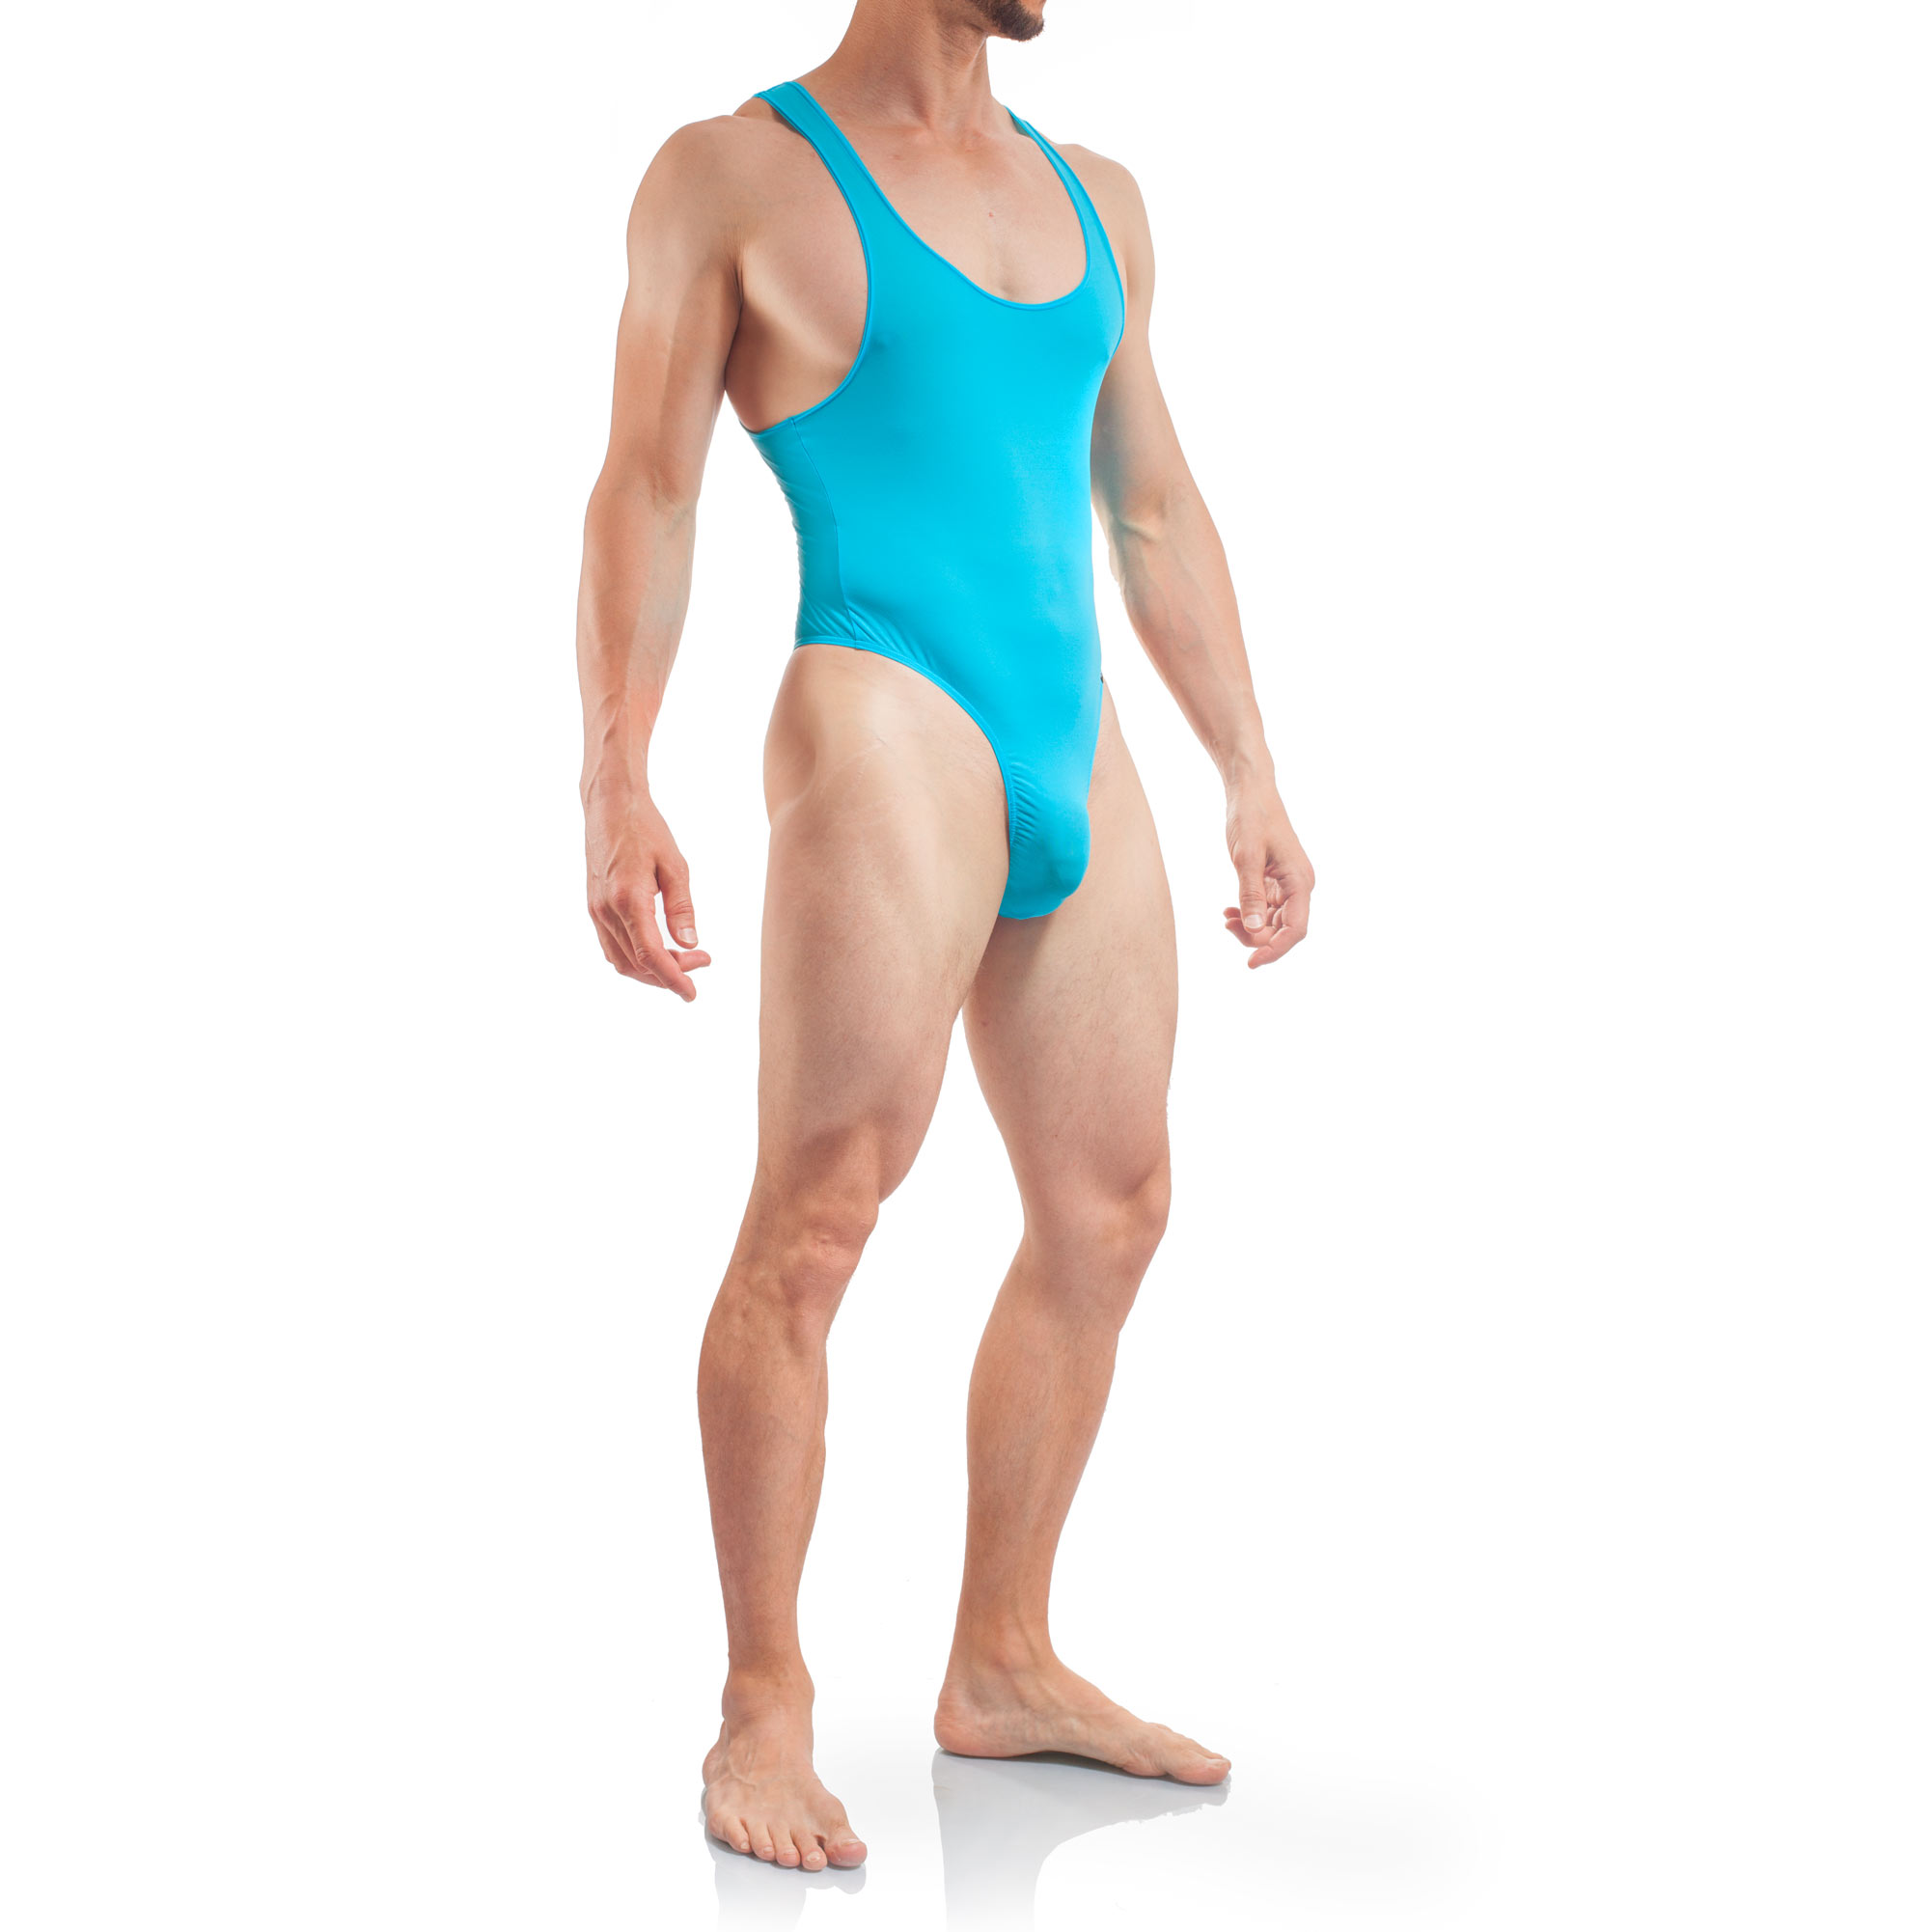 swimsuit men, Body Herren Tangabody, Jumpsuite, Eisblau, Basic Body Men, Stringbody, Männer Badeanzug